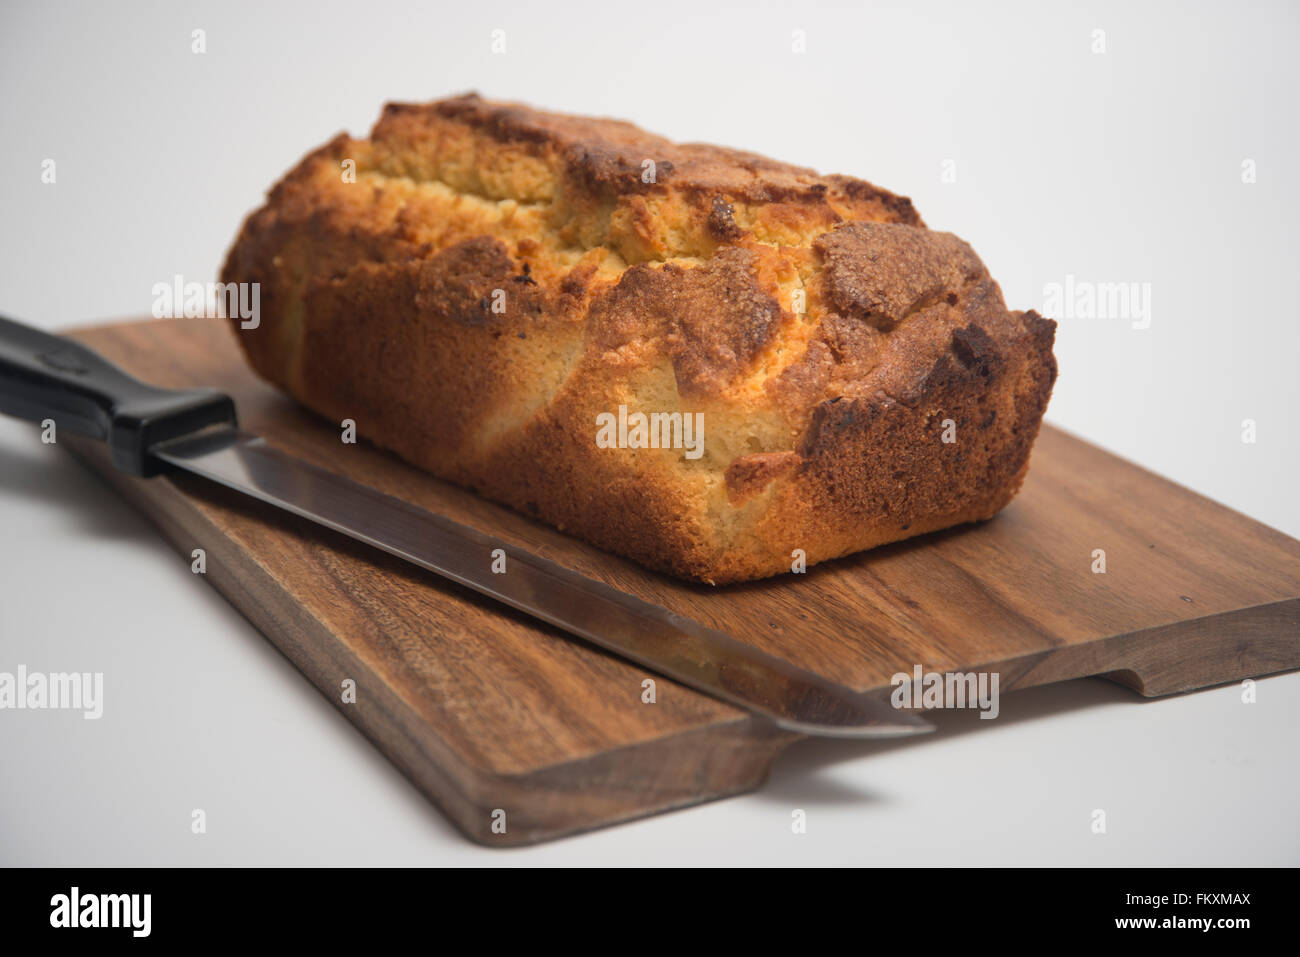 Homemade Madeira sponge cake on a wooden board - Stock Image